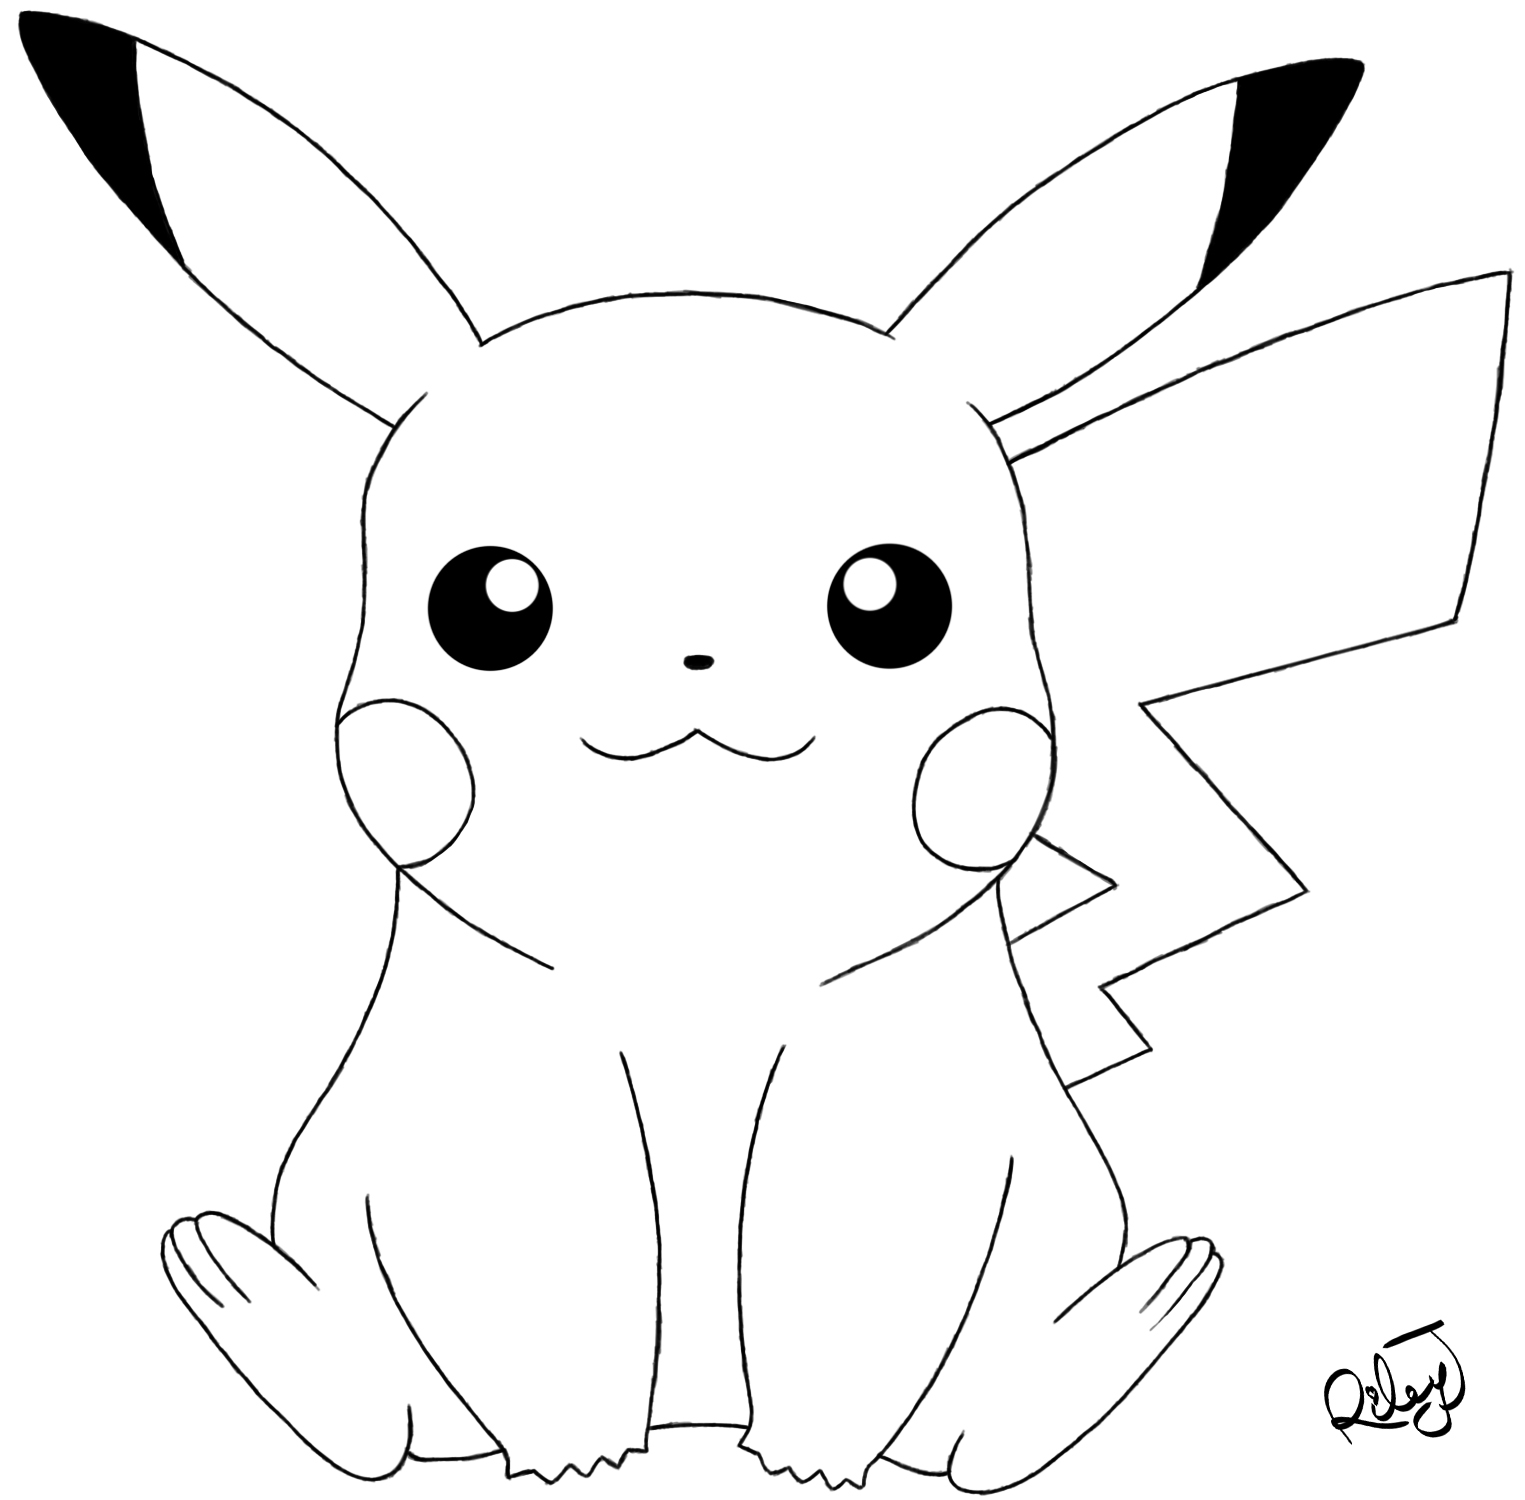 pikachu drawing coloring pages pokemon pikachu drawing at getdrawings free download drawing coloring pages pikachu